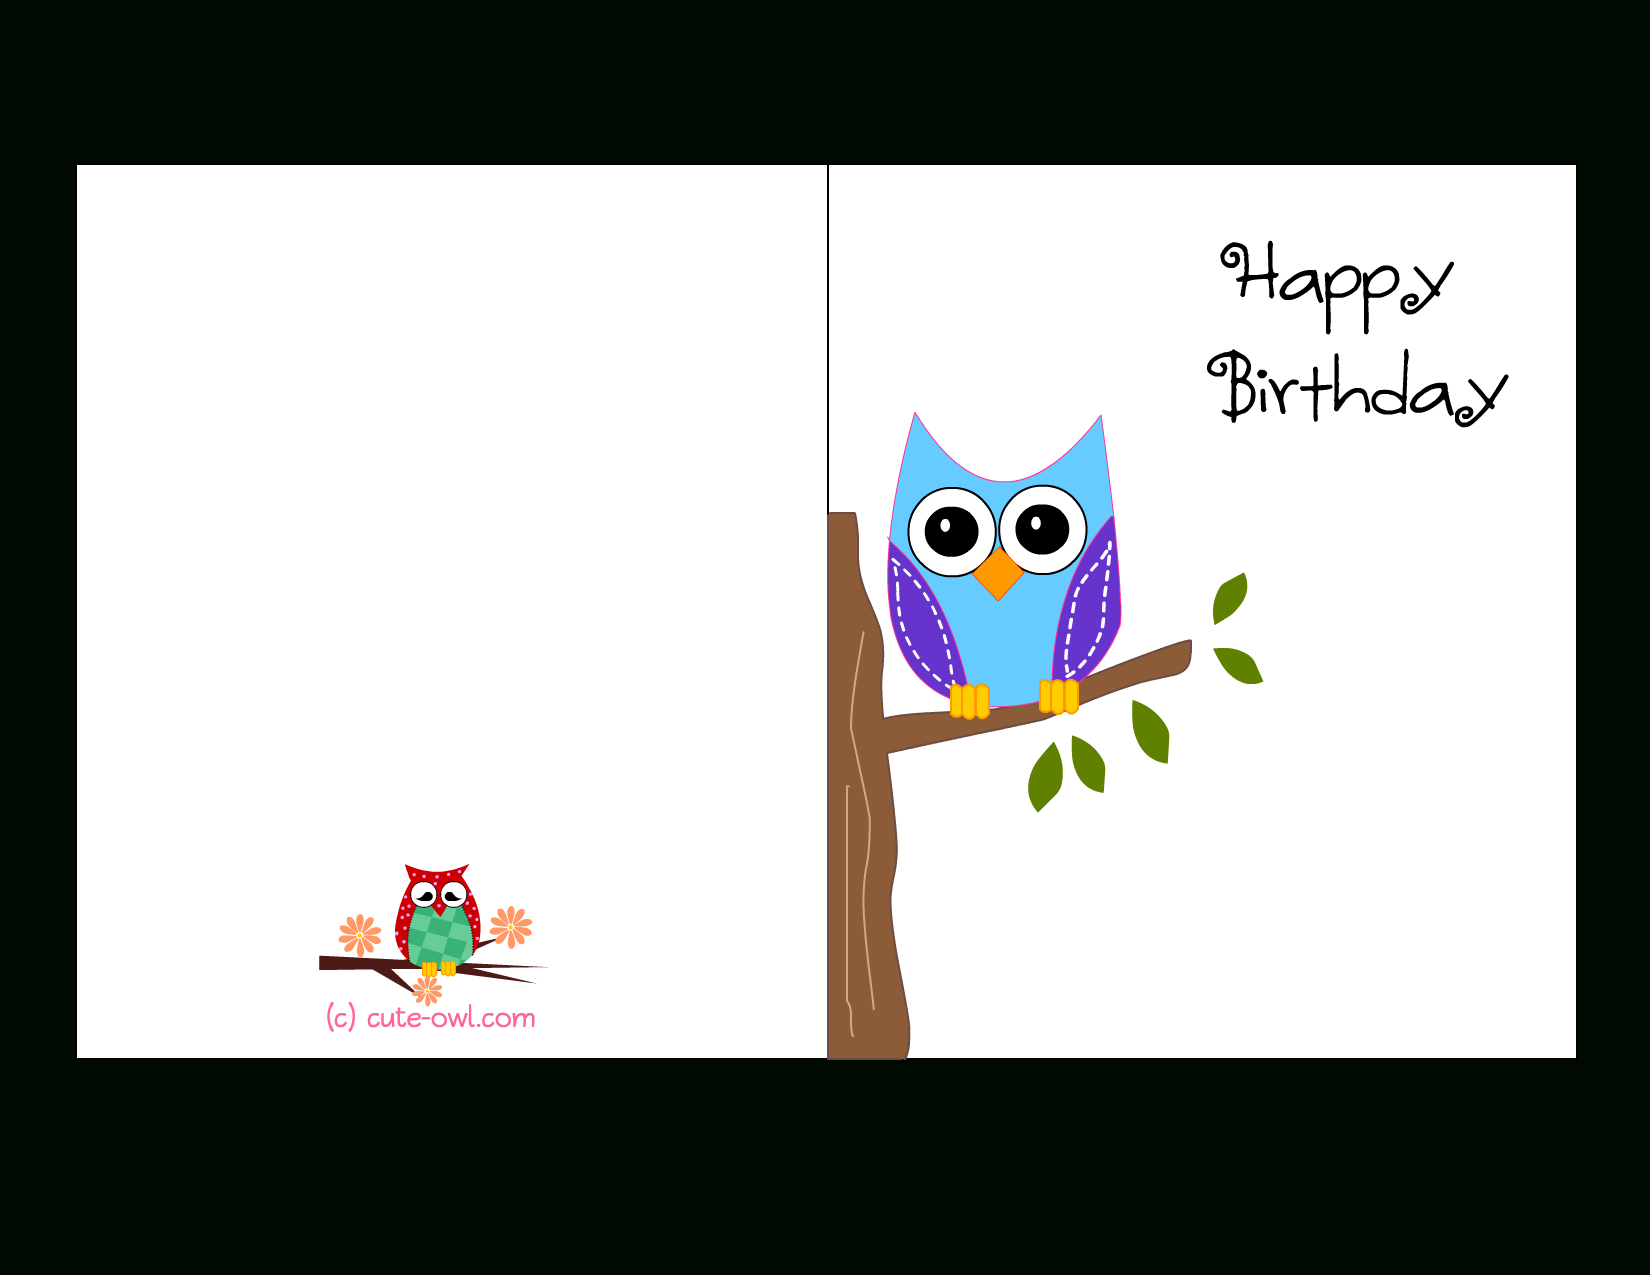 Free Printable Birthday Cards For Kids - Demir.iso-Consulting.co - Free Printable Greeting Cards No Sign Up